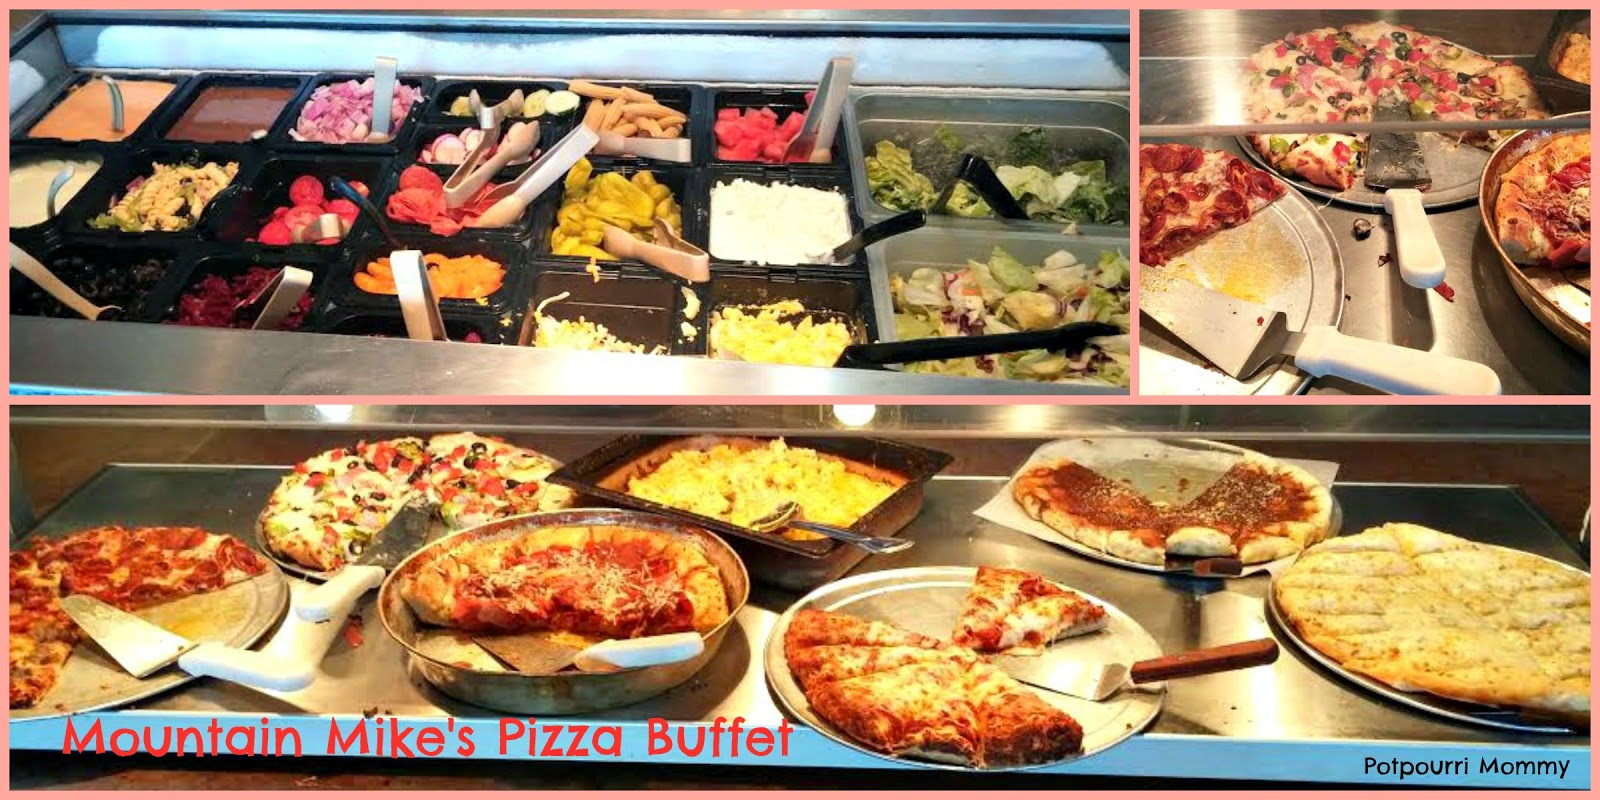 Nov 04,  · Mountain Mike's: Lunch buffet is such a deal! - See 18 traveler reviews, candid photos, and great deals for Santa Rosa, CA, at TripAdvisor.4/4.